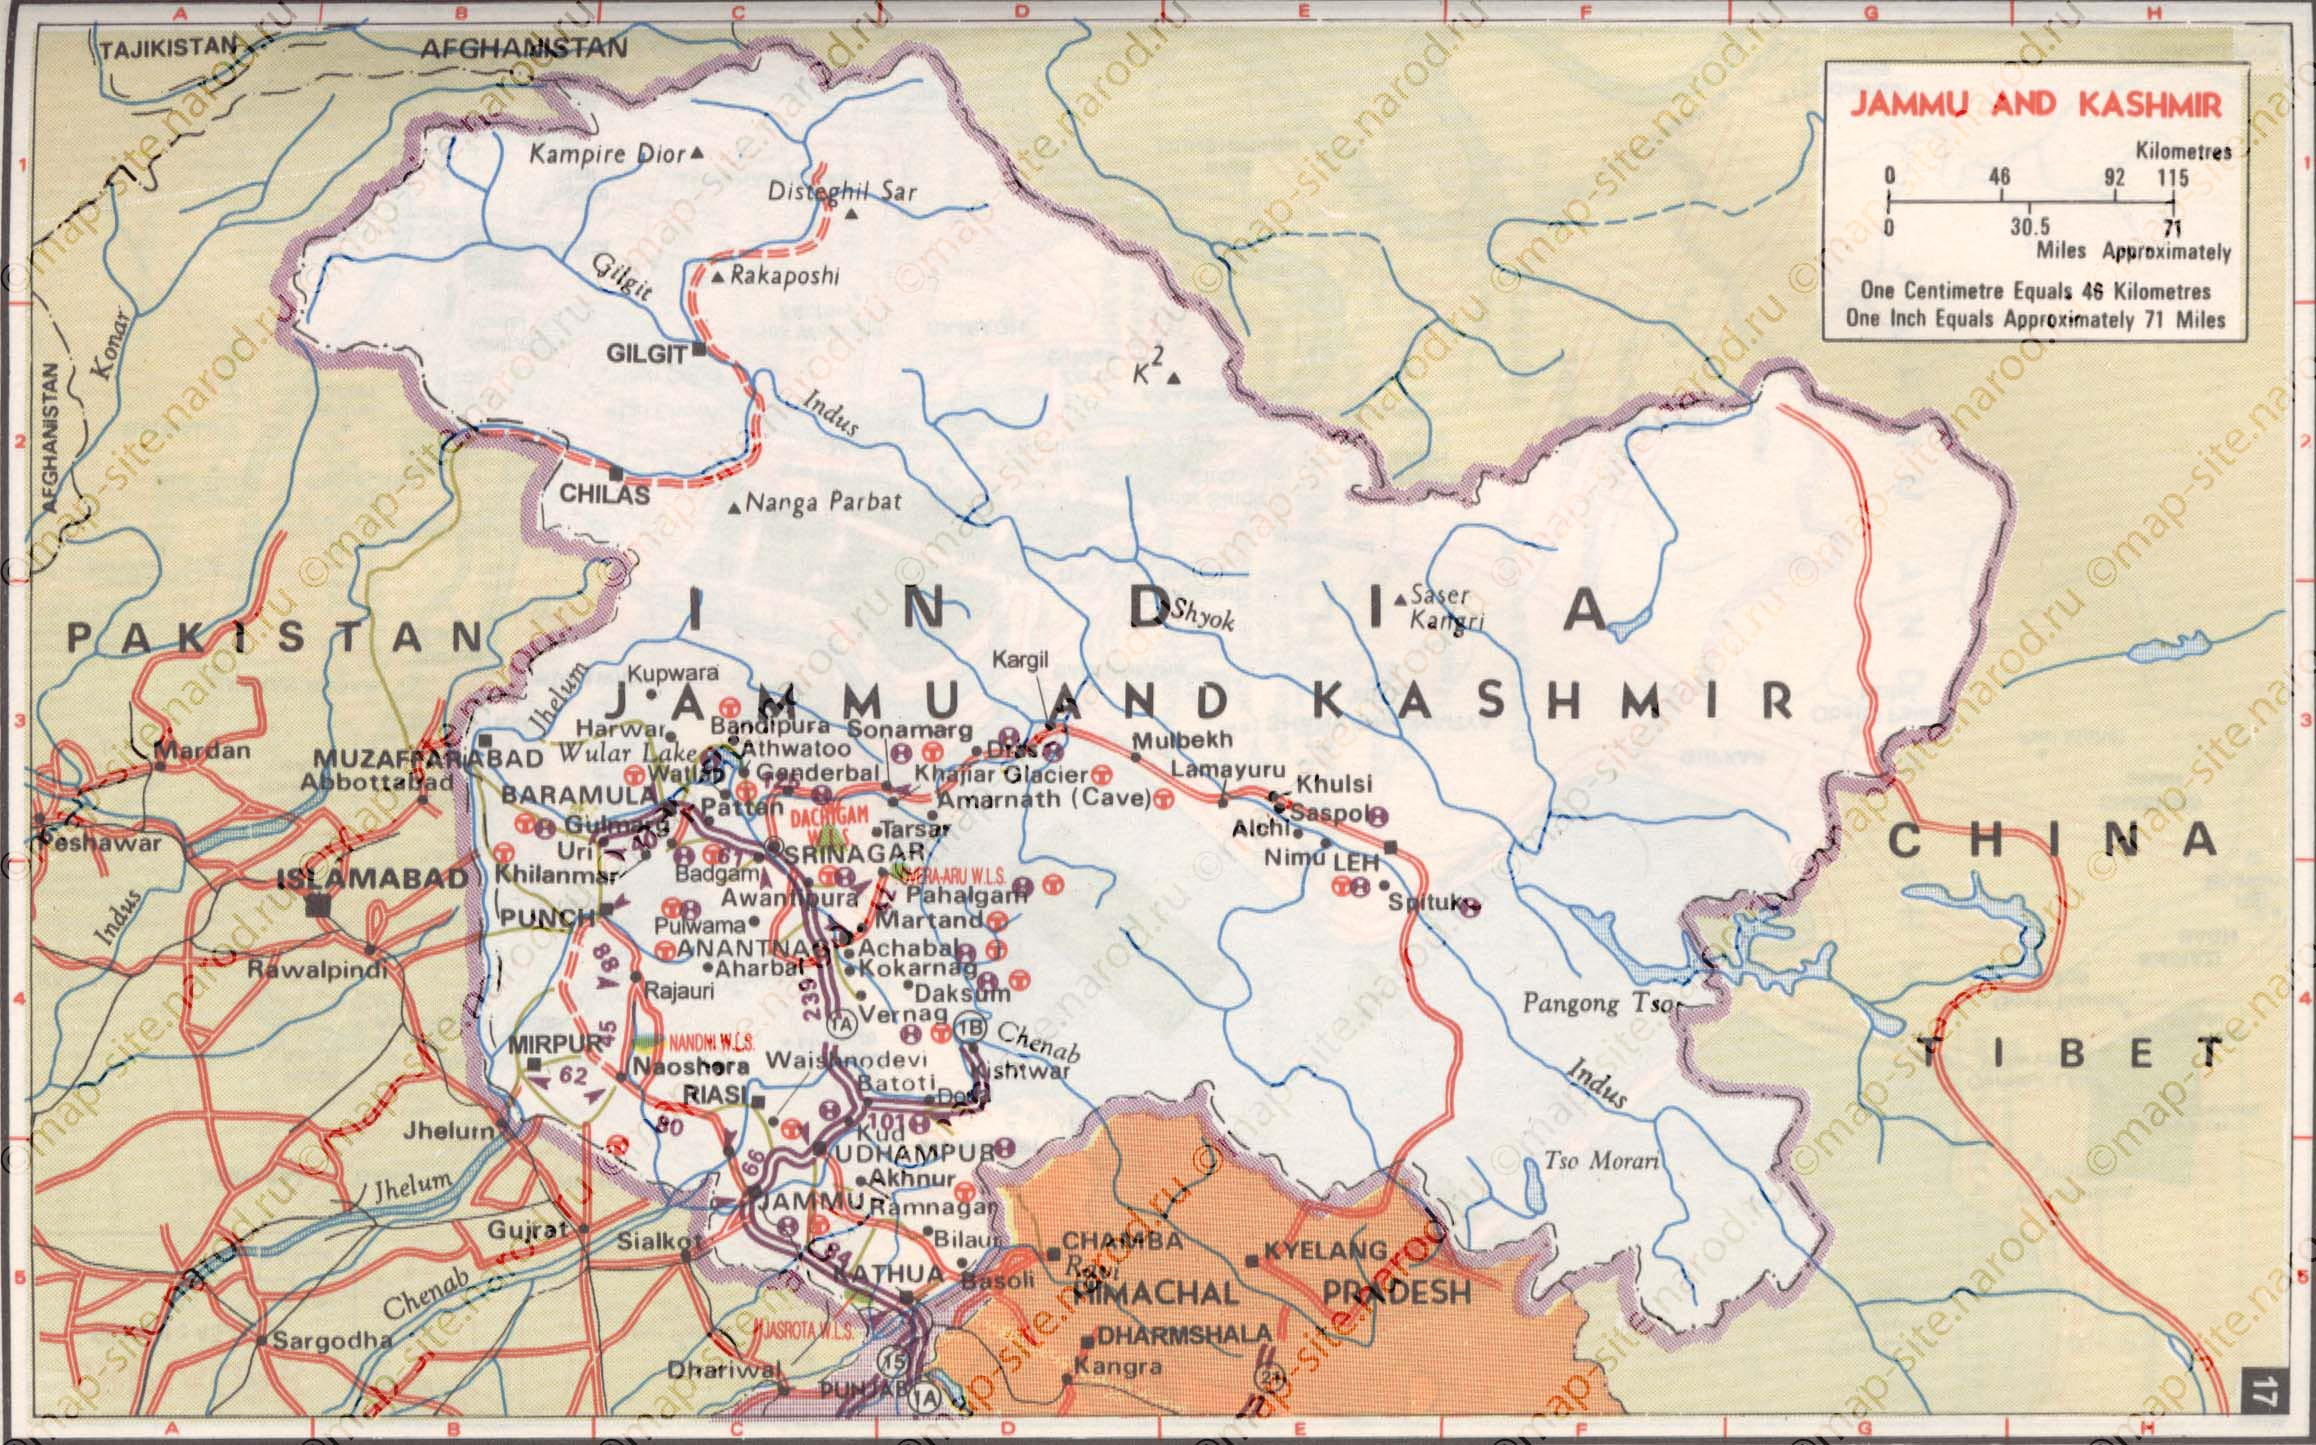 the history and geography of kashmir Kashmir history the muslim and hindu peoples of kashmir have lived in relative harmony and friendliness since the 13th century when islam first became the majority religion in kashmir.